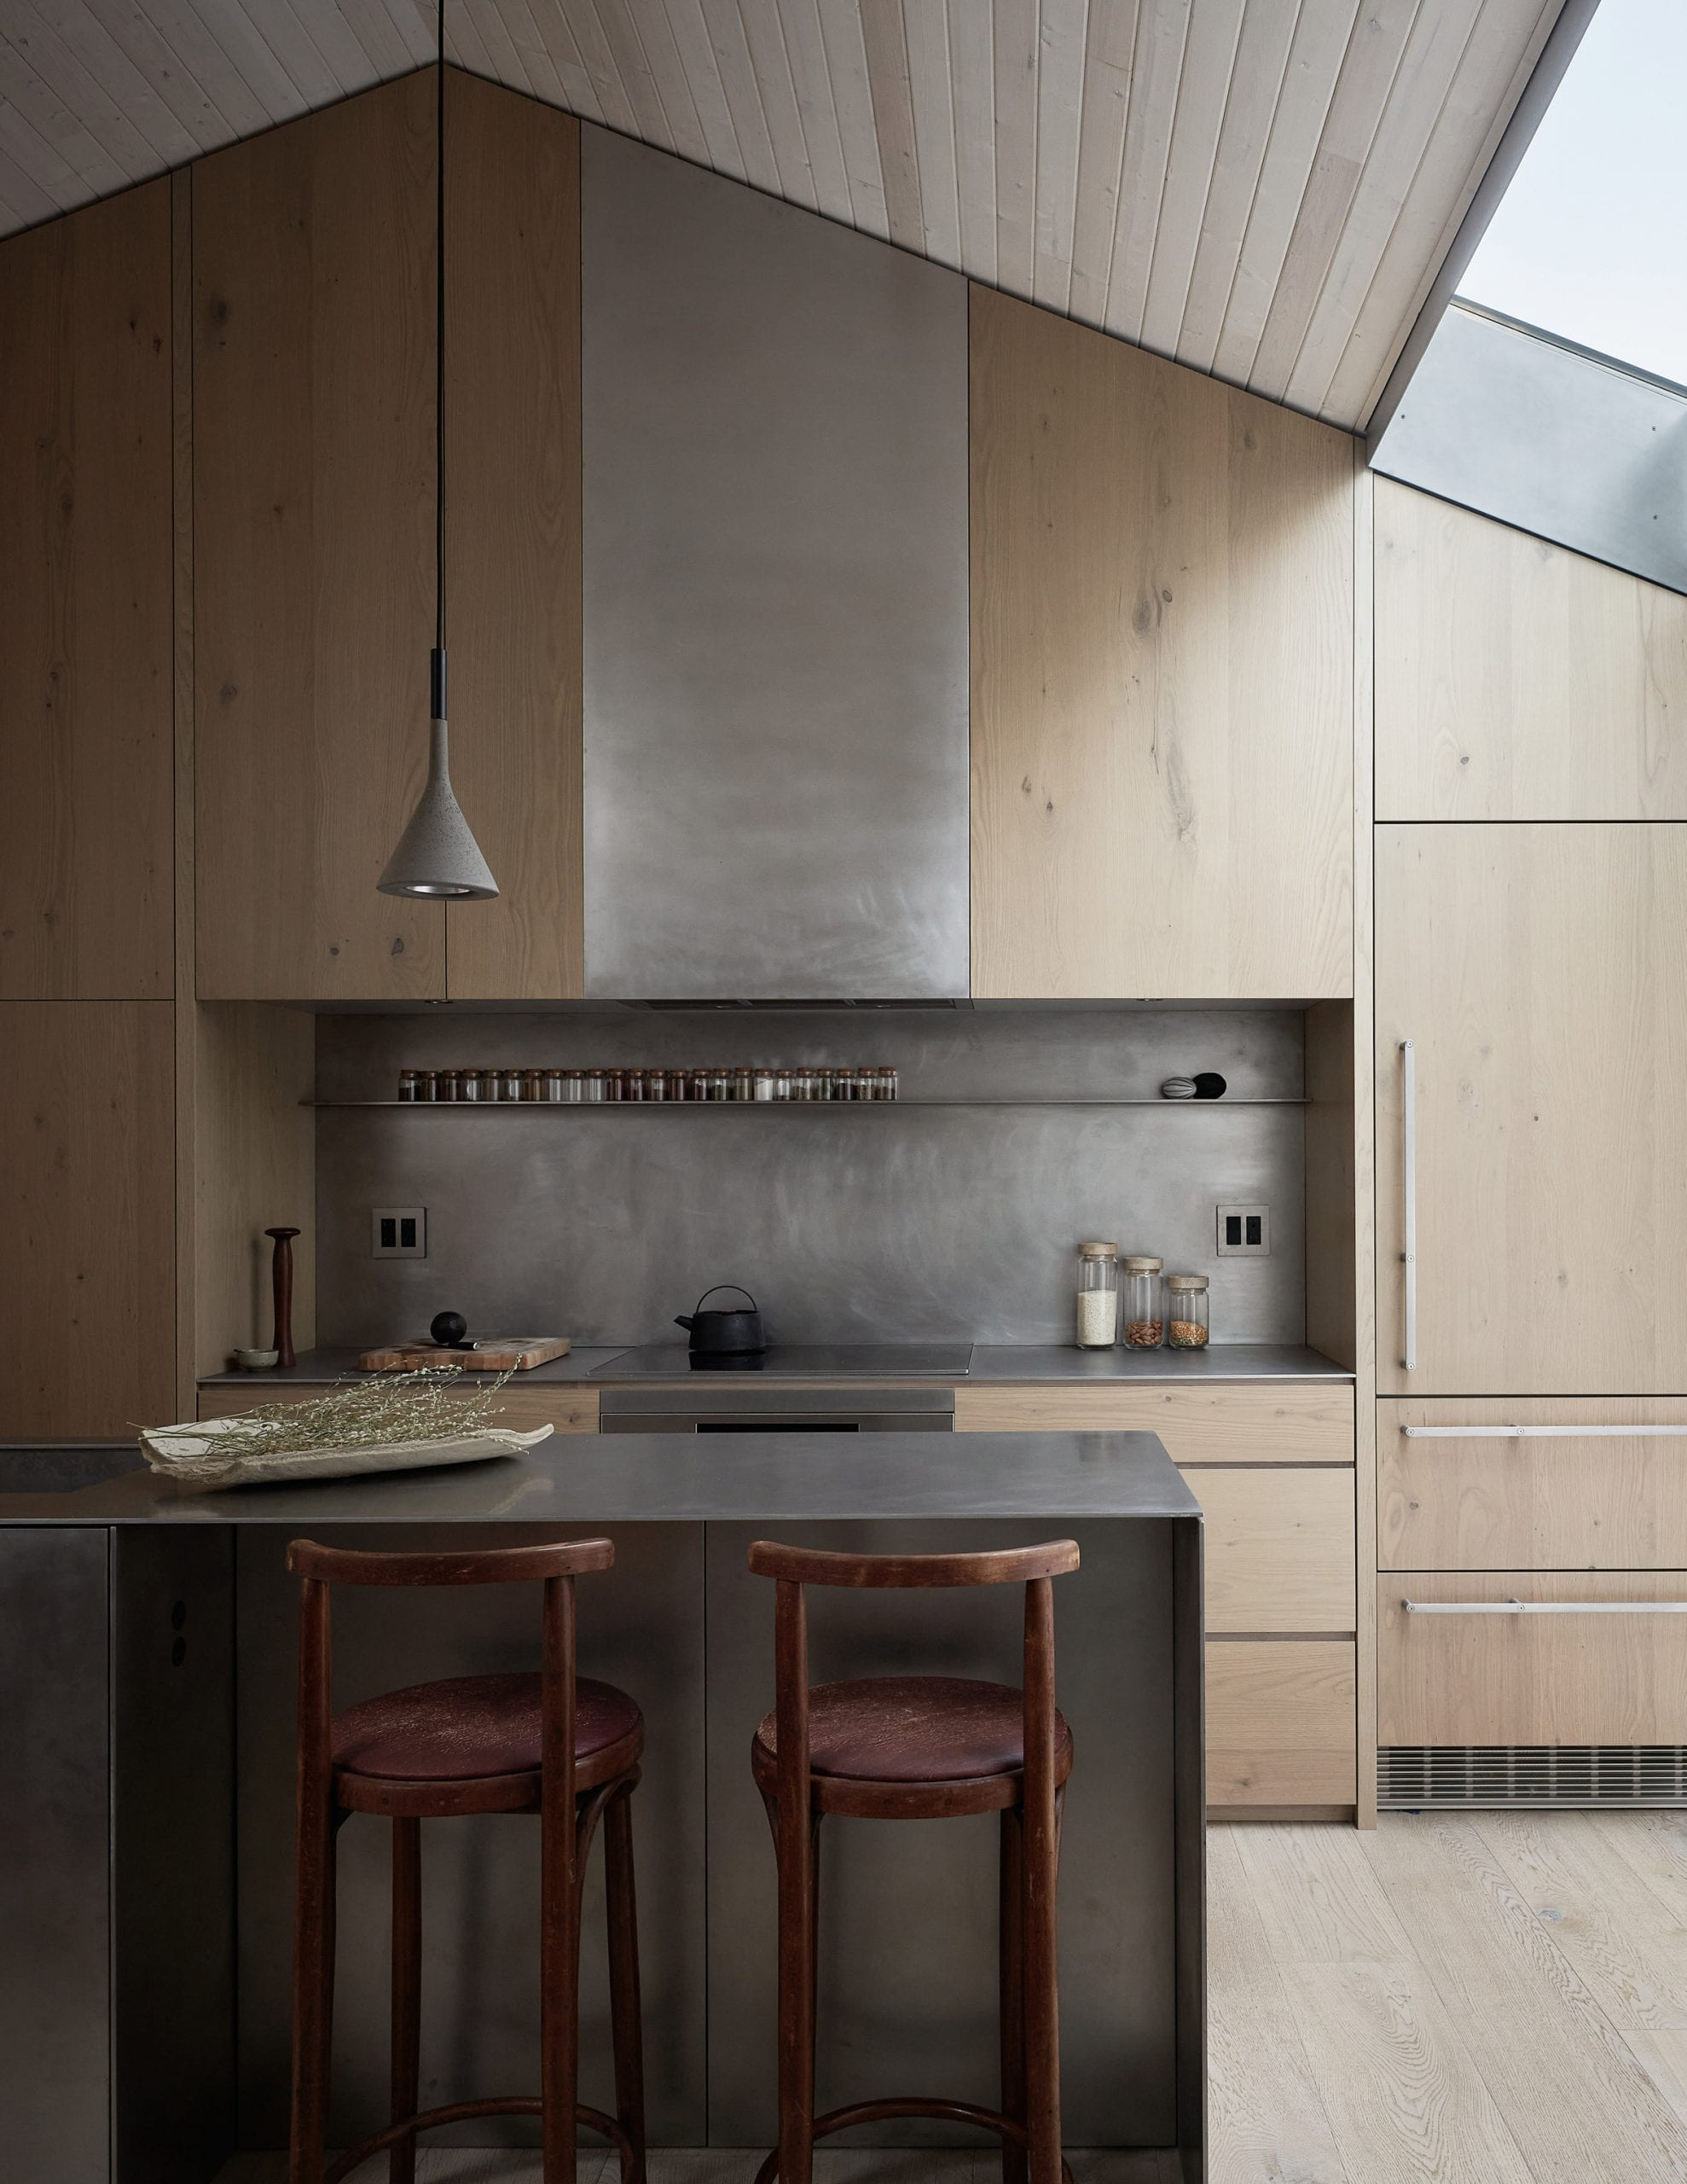 Skylights and wood panelling feature in the kitchen